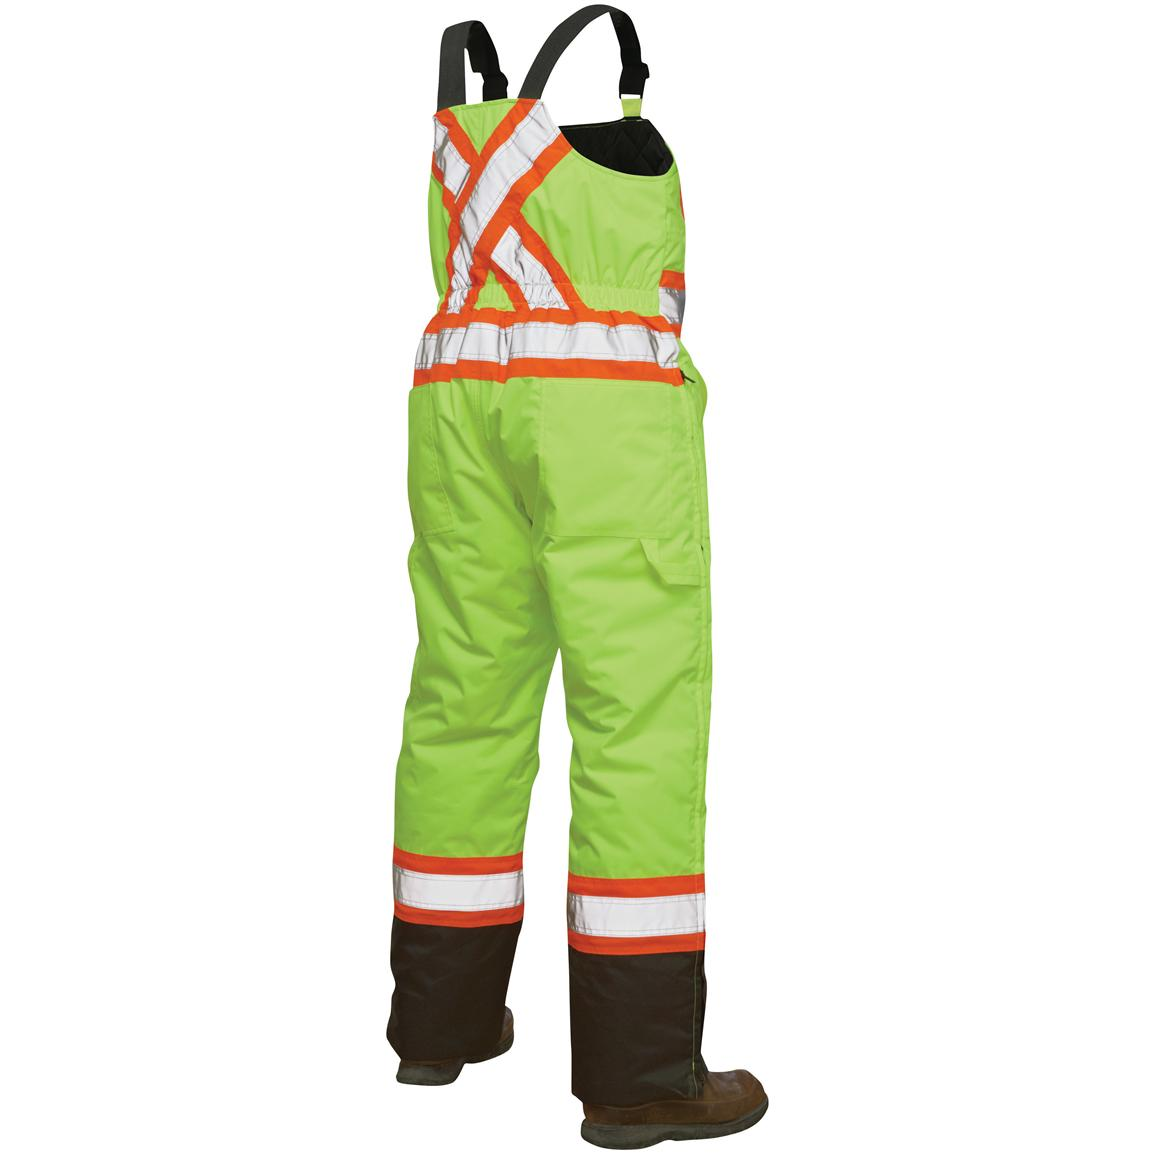 Work King Safety Hi-Vis Insulated Bib Overalls, Back View